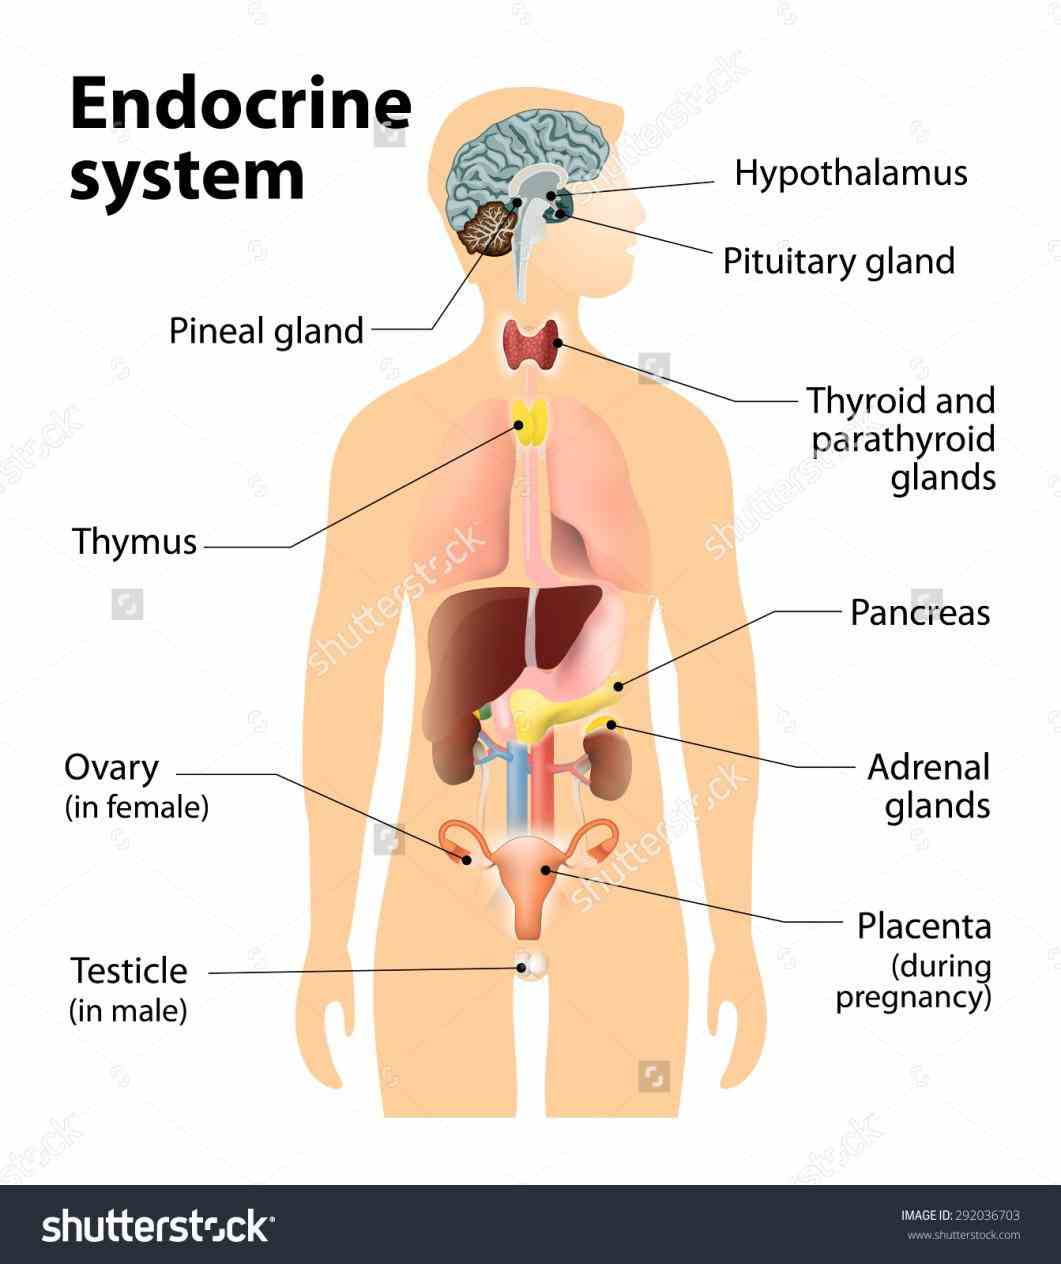 Endocrine System Organs And Their Functions